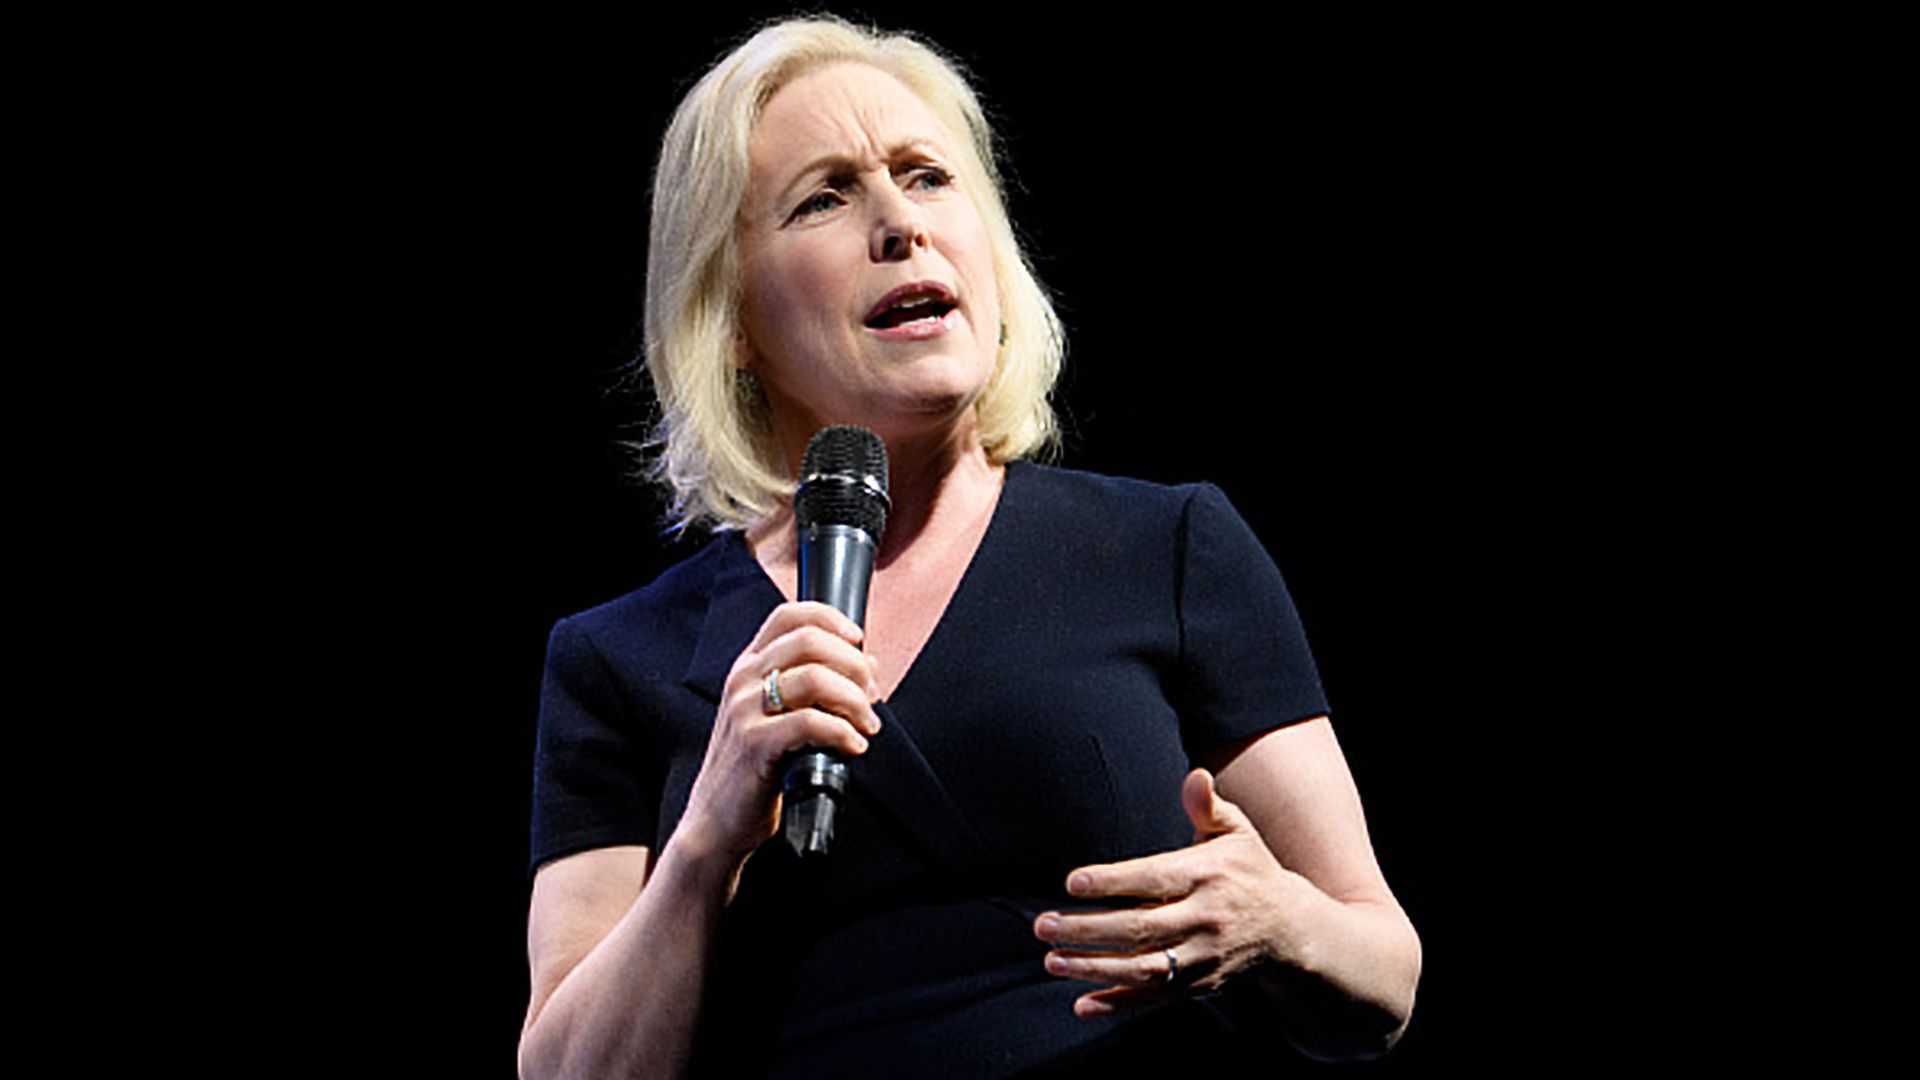 Sen. Kirsten Gillibrand says her views have changed on immigration.